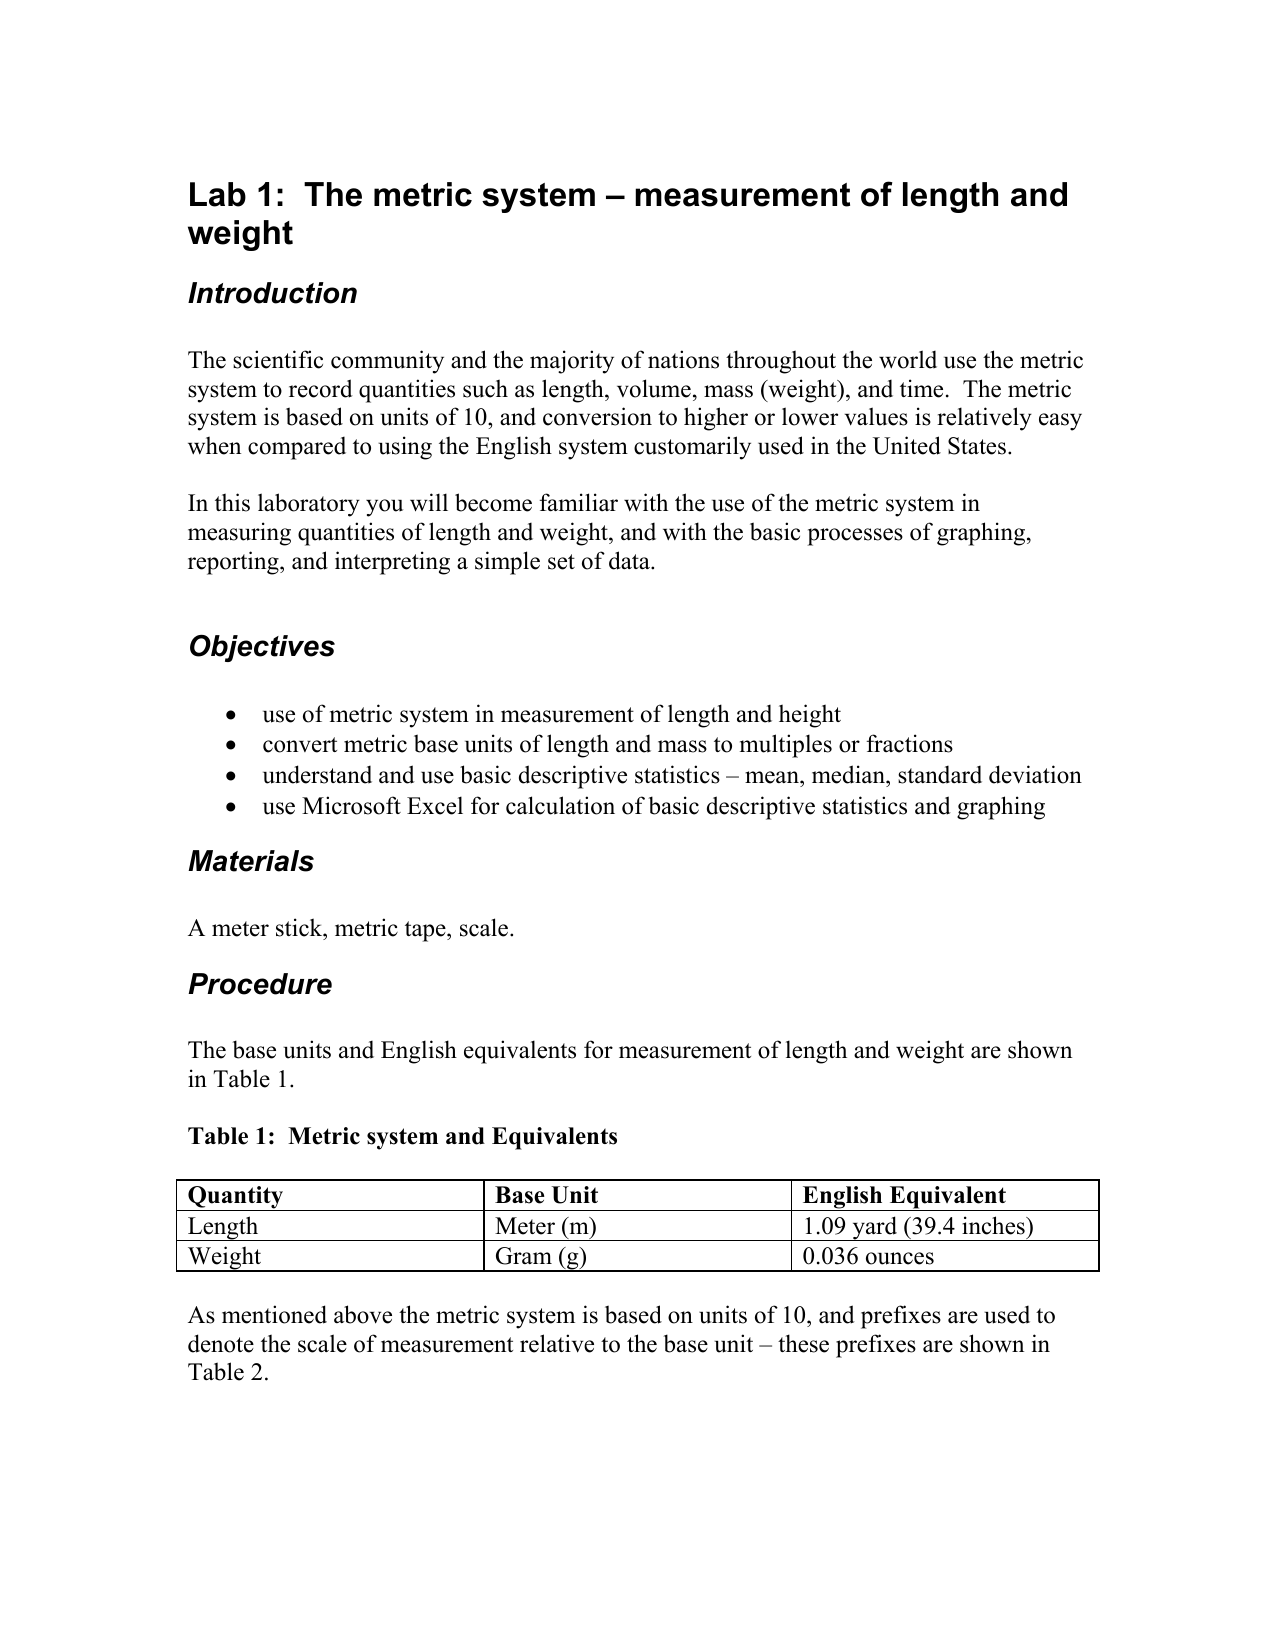 lab 1: the metric system – measurement of length and weight